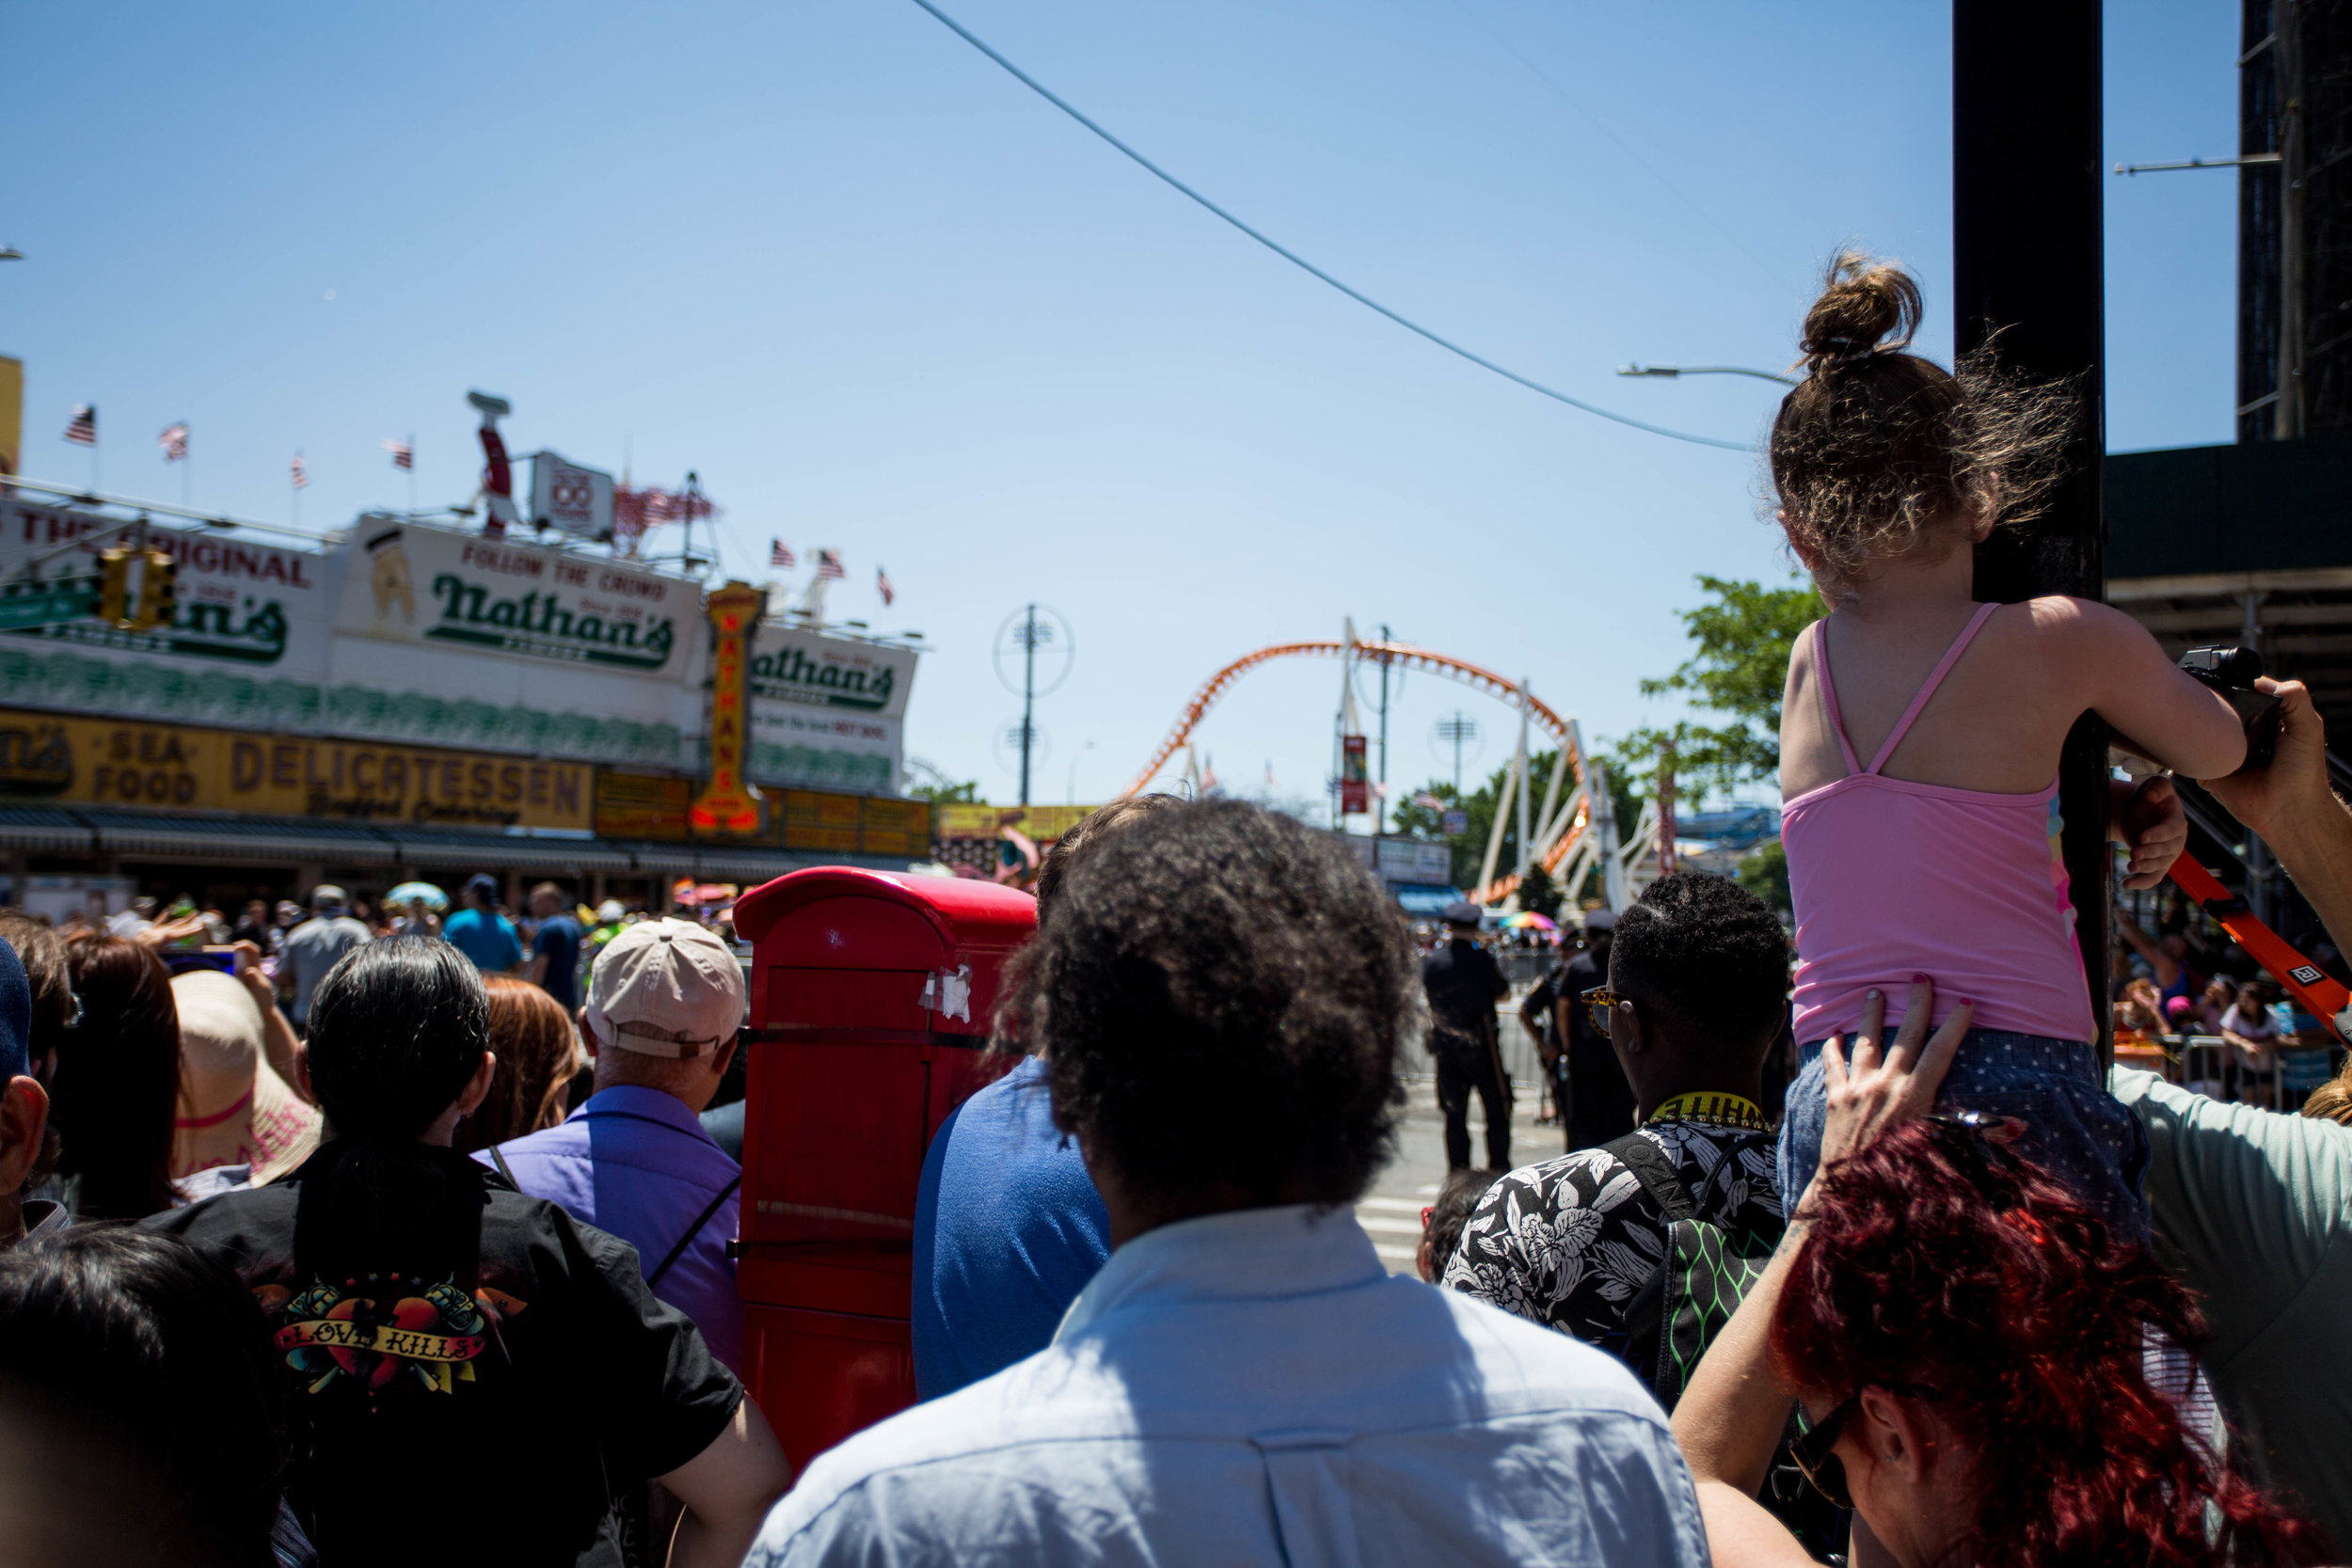 A mother holds her child up in odrder to get a better view over the crowd at Coney Island's 36th anual Mermaid Day Parade, on Saturday June 16, in New York. Photo: Wes Parnell